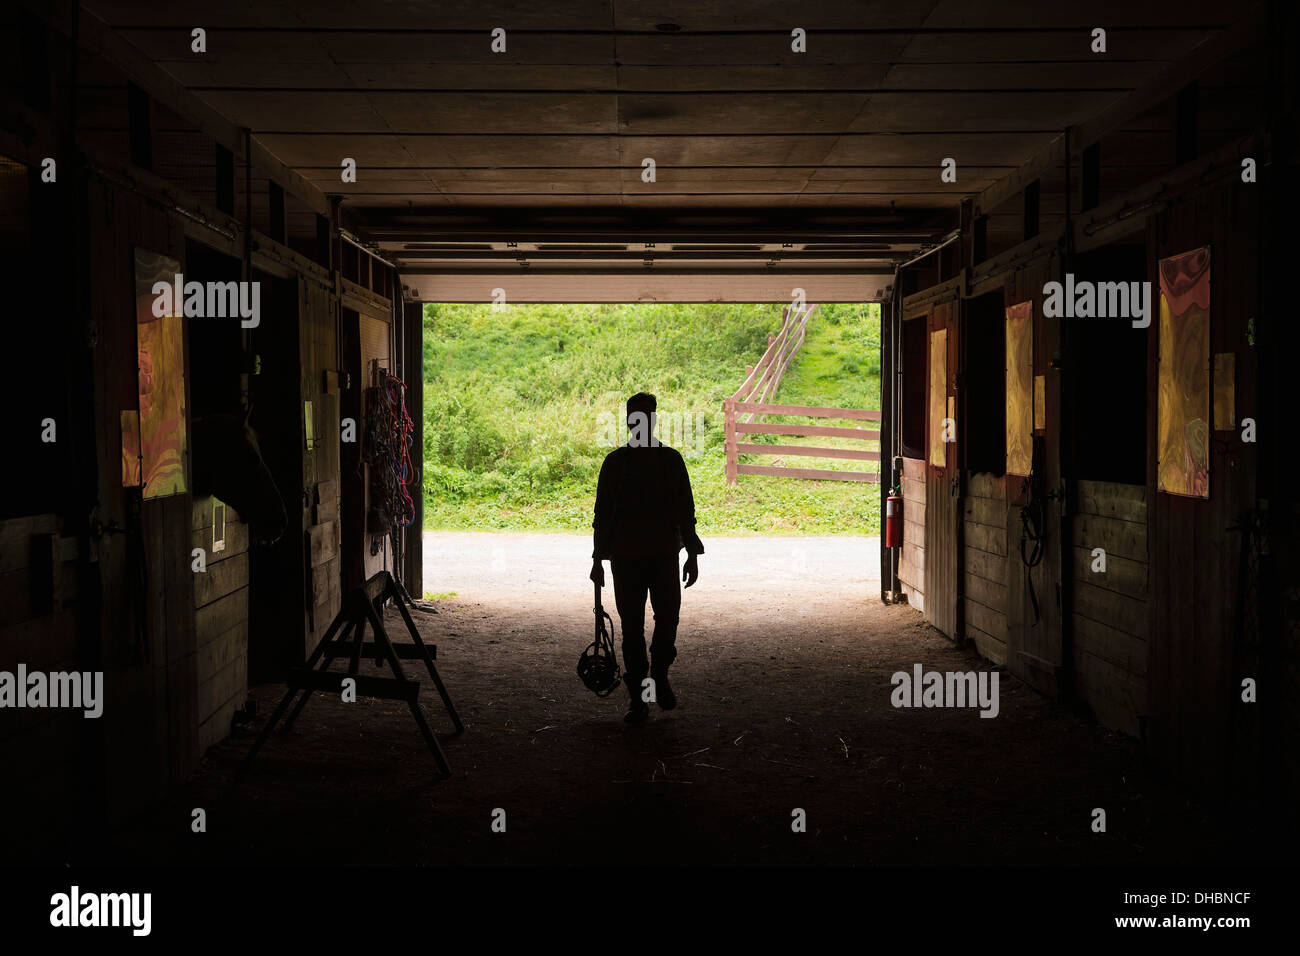 An organic farm in the Catskills. A man walking through a stable. - Stock Image